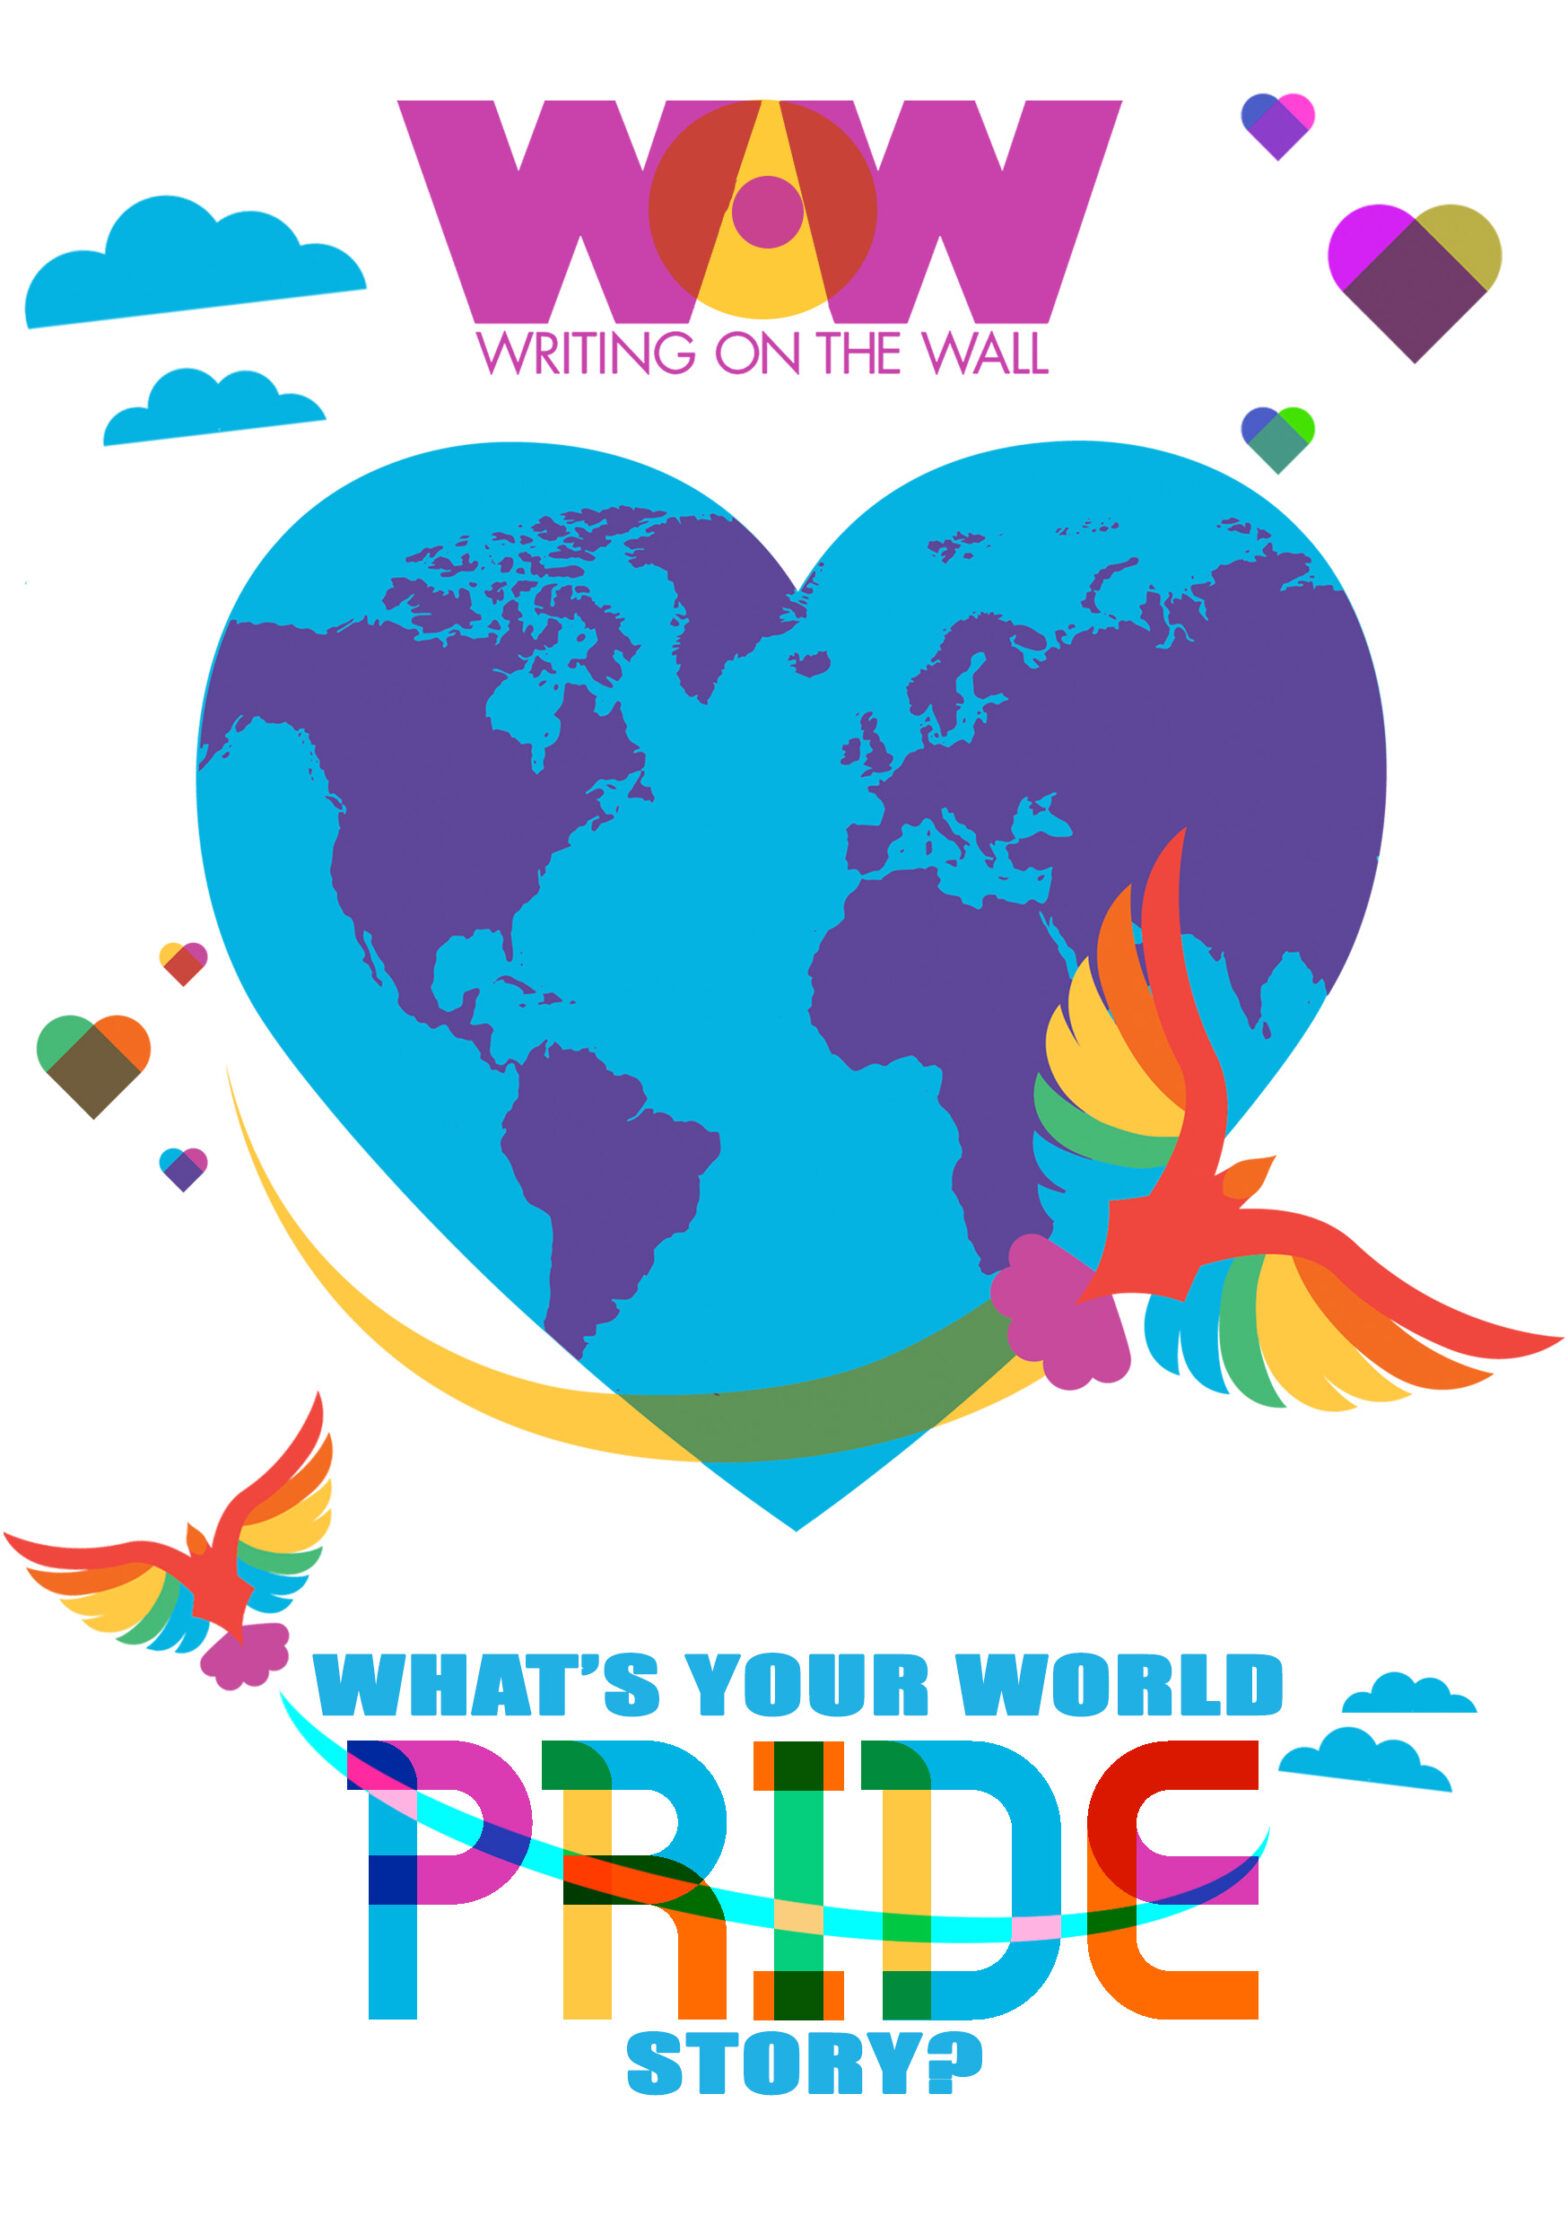 What's Your World Pride